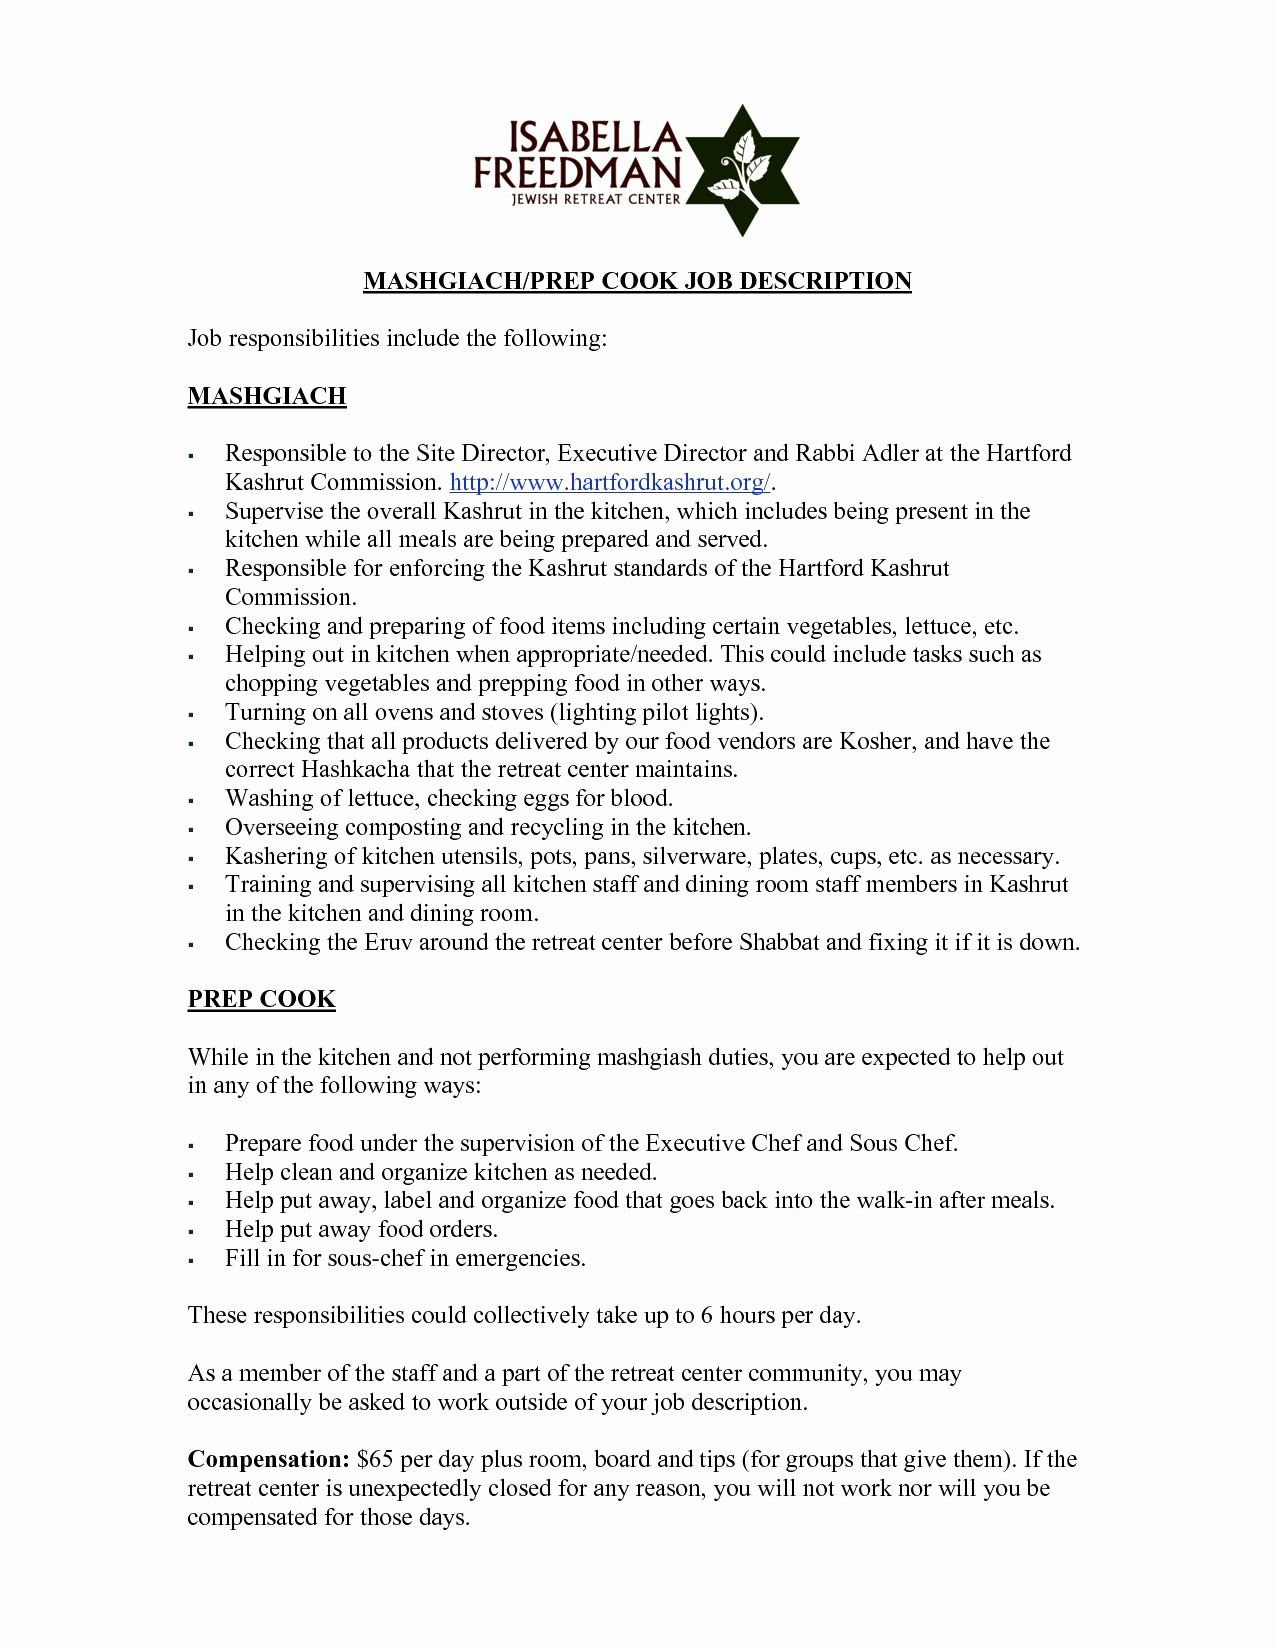 Volunteer Letter Template - Sample Interest Letter for Volunteering Beautiful Resume and Cover